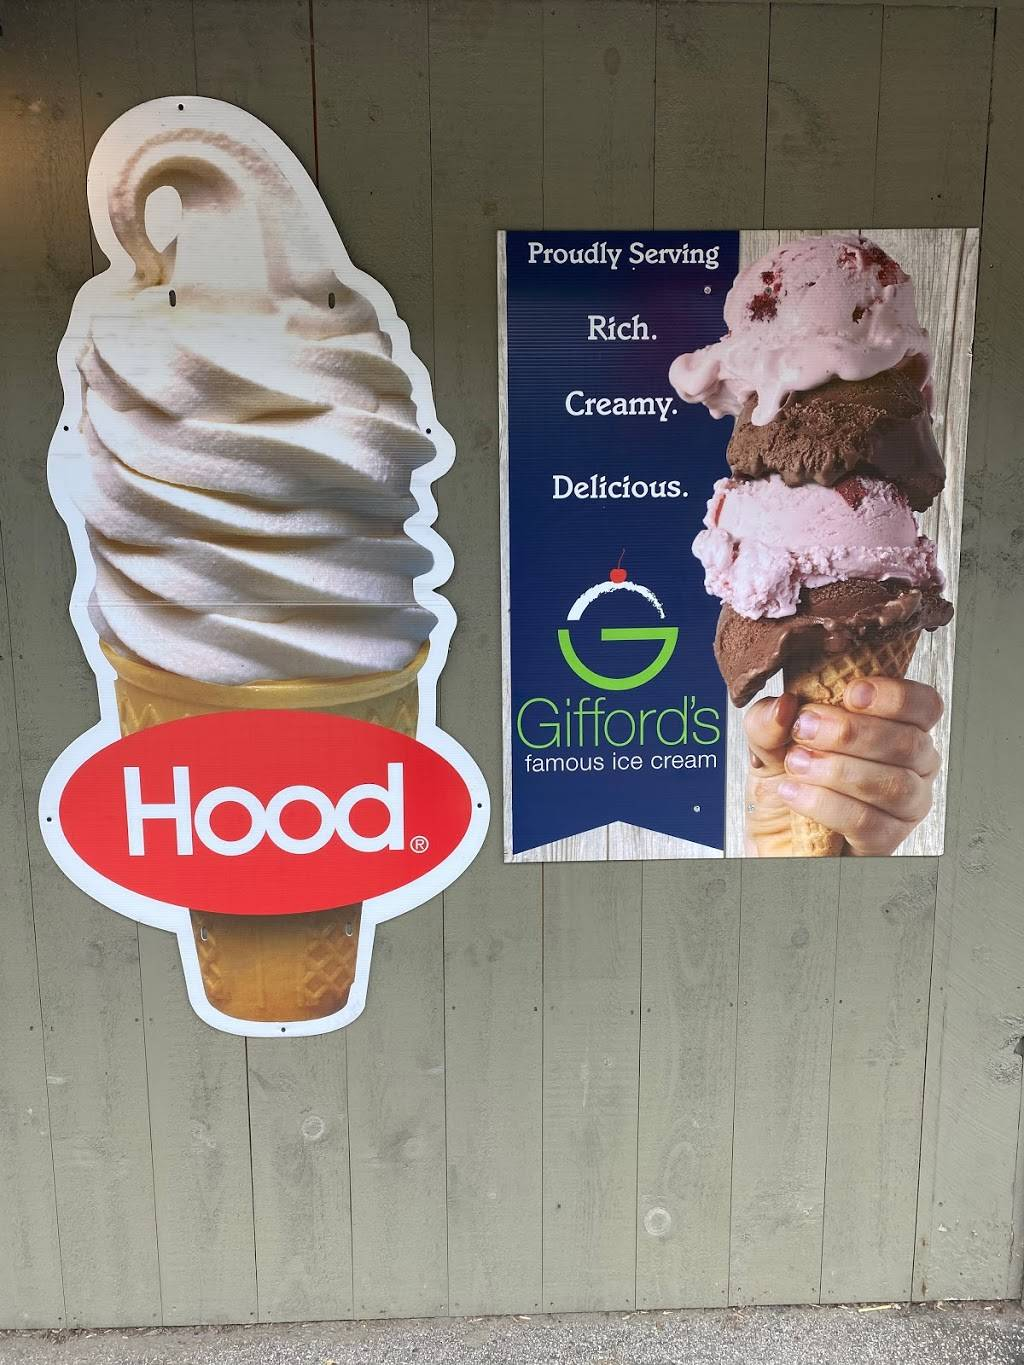 Thomas Scoops! | meal takeaway | 535 US-302, Barre, VT 05641, USA | 8026228466 OR +1 802-622-8466